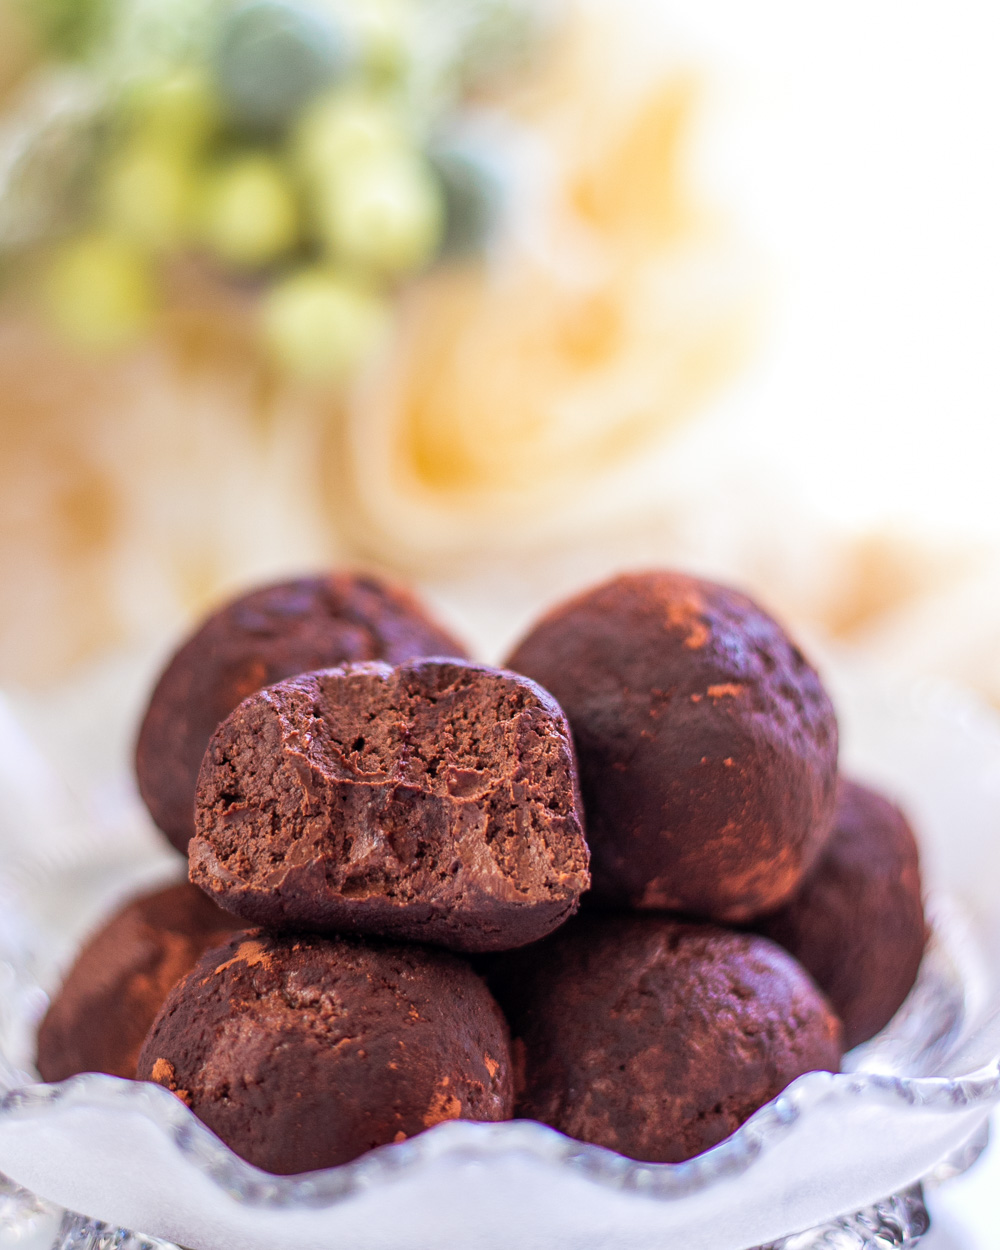 The Healthy Low-Calorie Truffles are naturally high in protein, low-fat, easy to make, taste like dark chocolate and they're just 25 calories a piece!